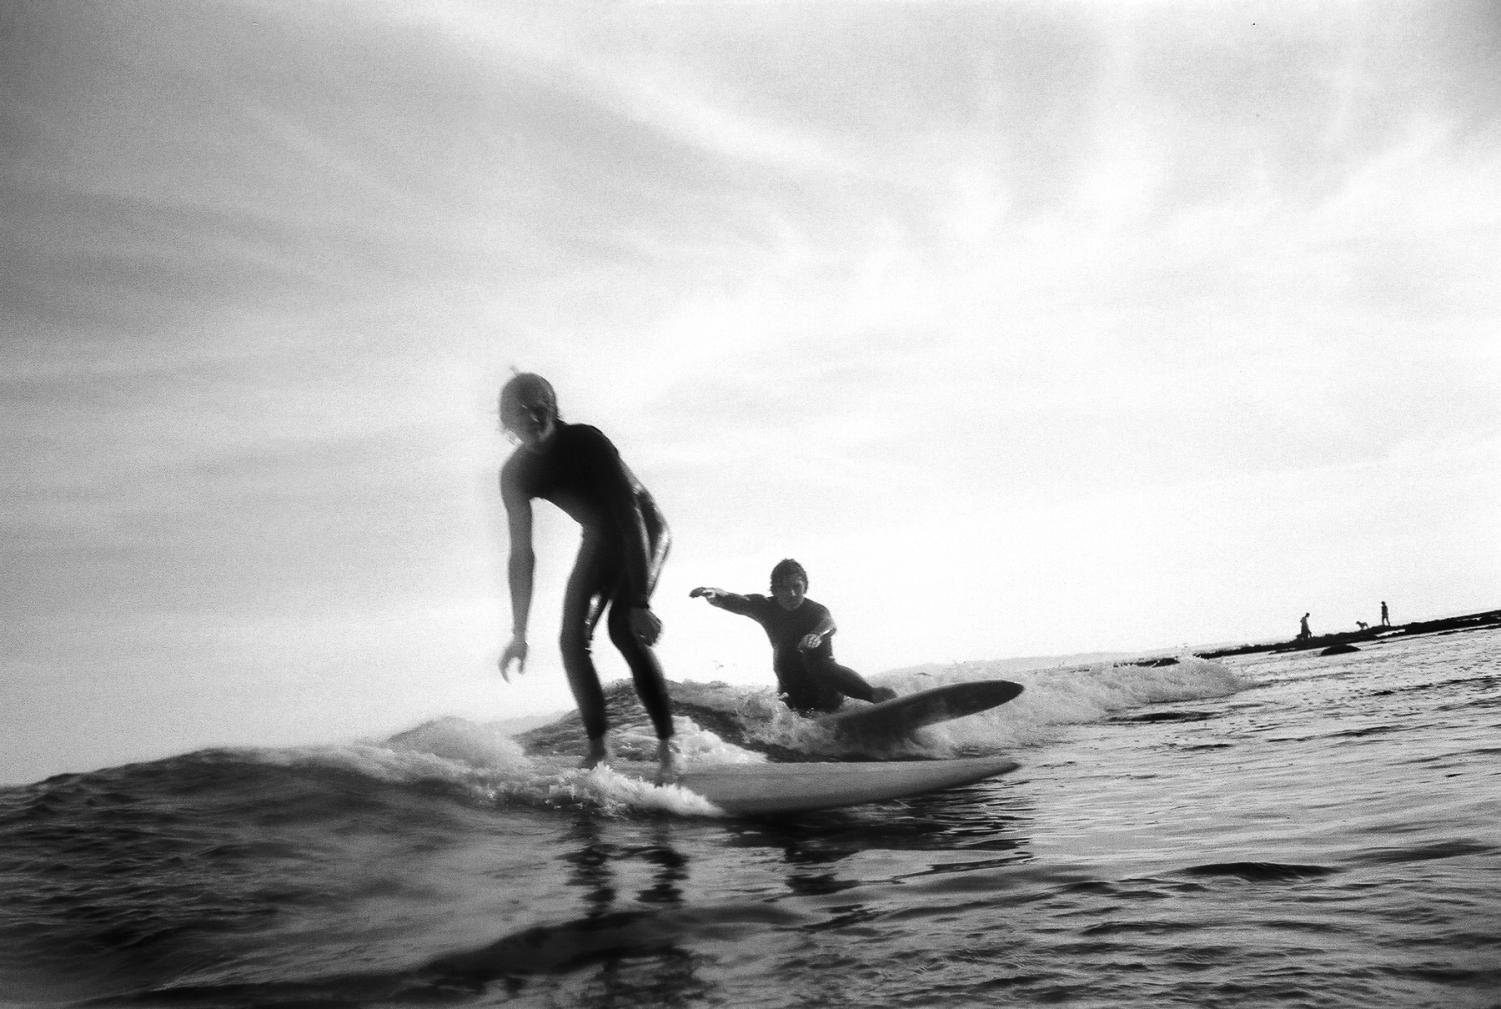 Luke Williams (right) and younger brother Jake Williams share a wave at Leadbetter Beach on Wednesday, Feb. 26 in Santa Barbara, Calif. Luke and Jake grew up in Ventura, Calif., and have been surfing since they were young teenagers.